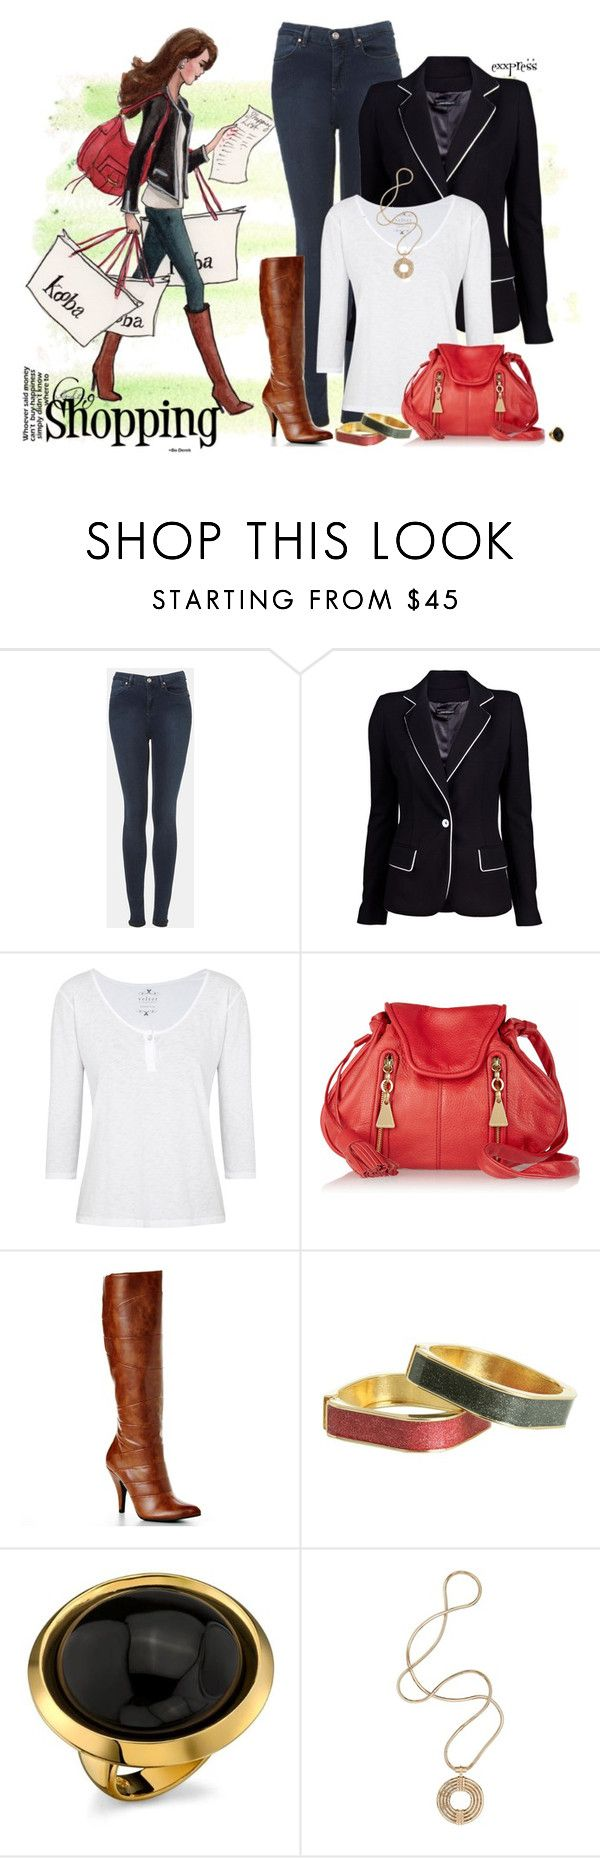 """""""Chic Girl says Let's Go Shopping"""" by exxpress ❤ liked on Polyvore featuring Topshop, Plein Sud Jeanius, Velvet, See by Chloé, Apt. 9, Betsey Johnson, House of Harlow 1960, Lara Bohinc and inslee"""